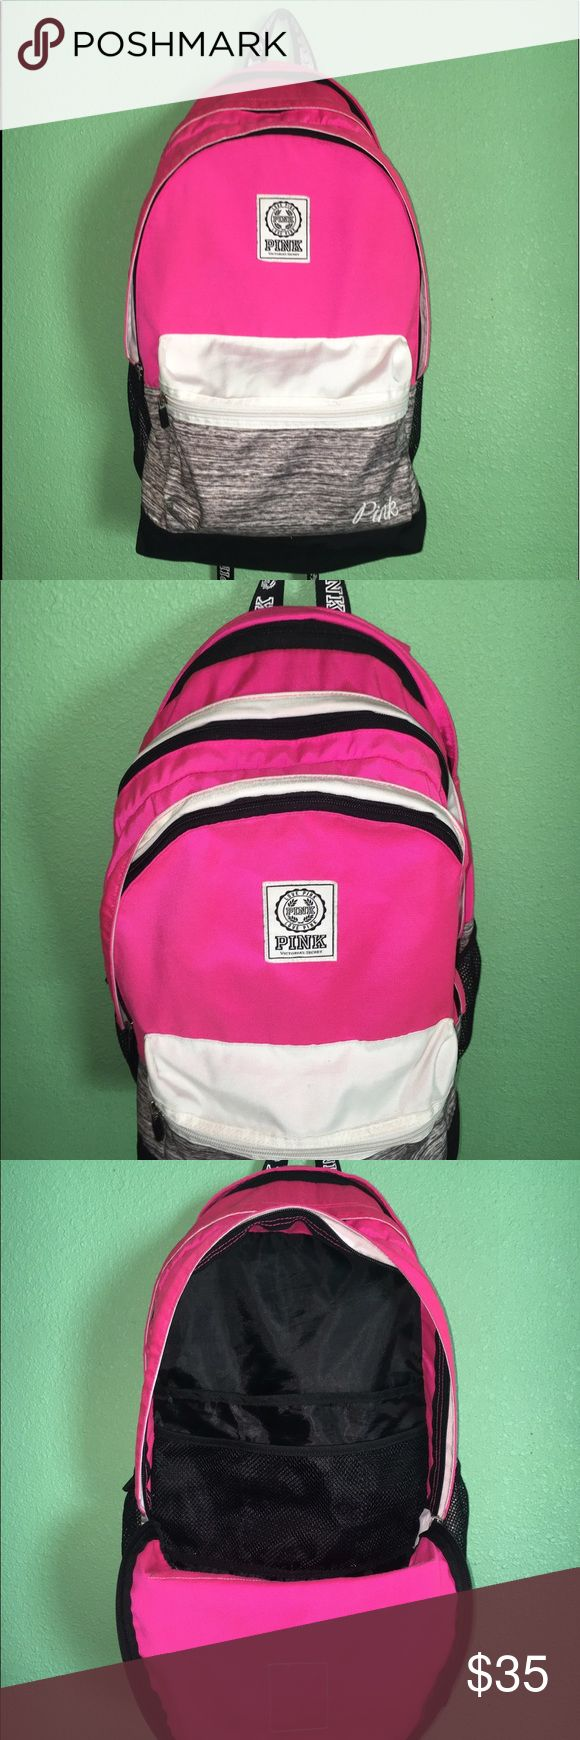 PINK VS BACKPACK ! I bought this backpack for me but will no longer need it. This is a great backpack for school. It is in great conditions no stains nor rips. It has 4 different departments. 1 that can be used for pens and pencils, 2 that can be used for notebooks and binders and the other can be used for your laptop. PINK Victoria's Secret Bags Backpacks